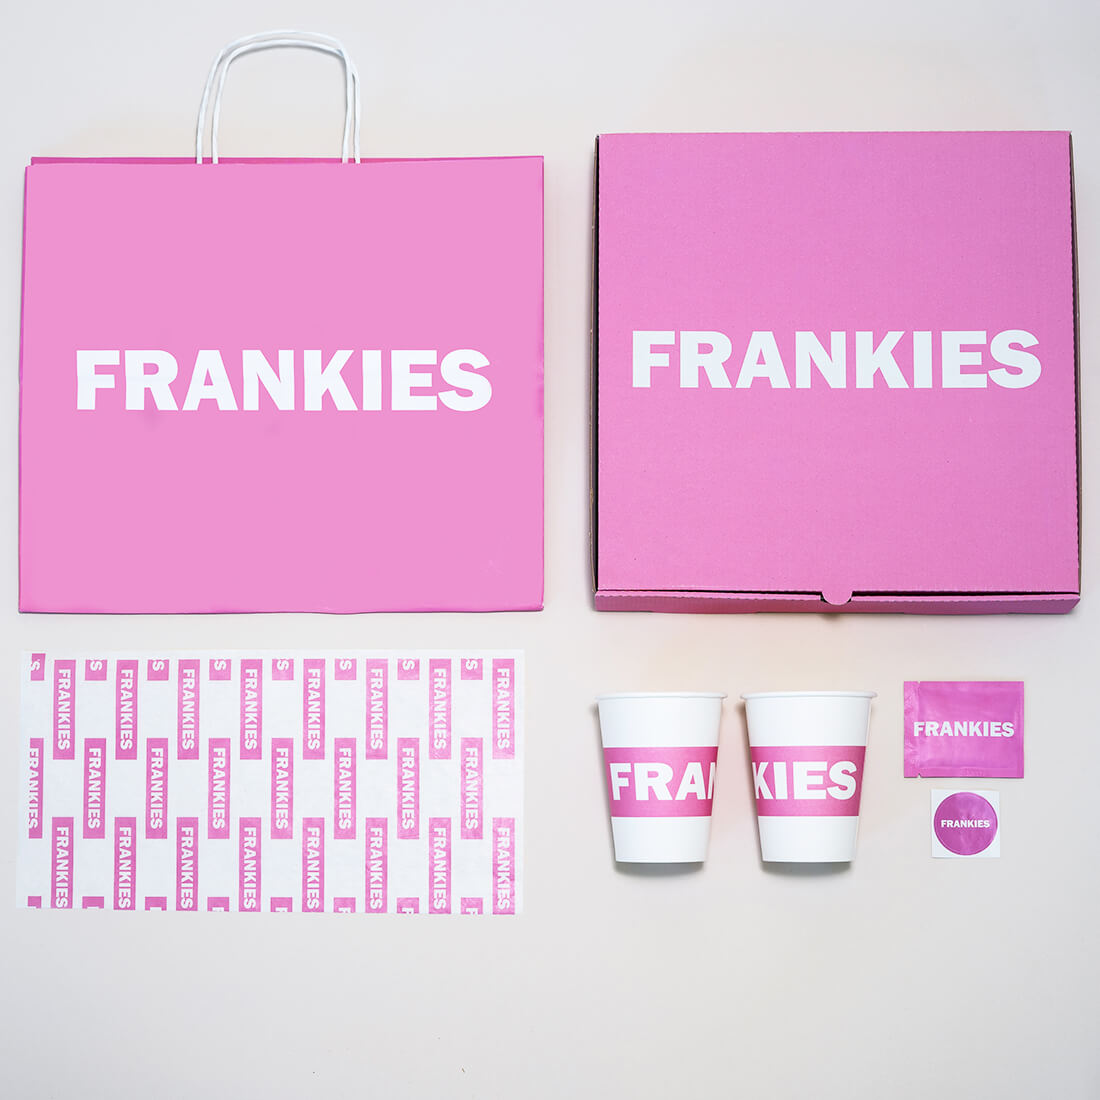 The pink print on the packaging makes the company stand out and attracts the attention of customers.